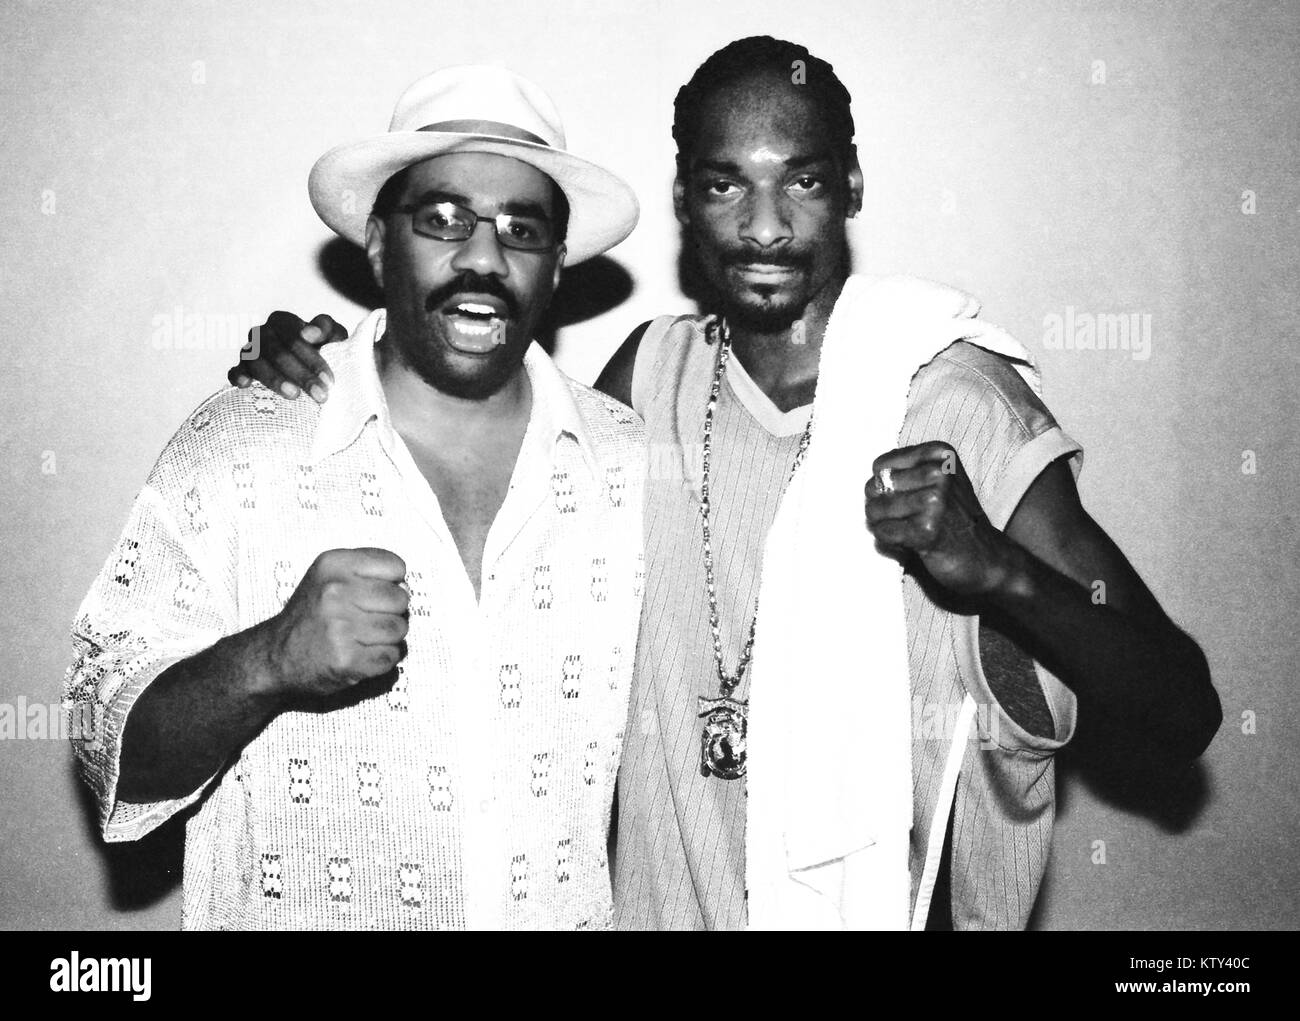 Snoop Black and White Stock Photos & Images - Alamy